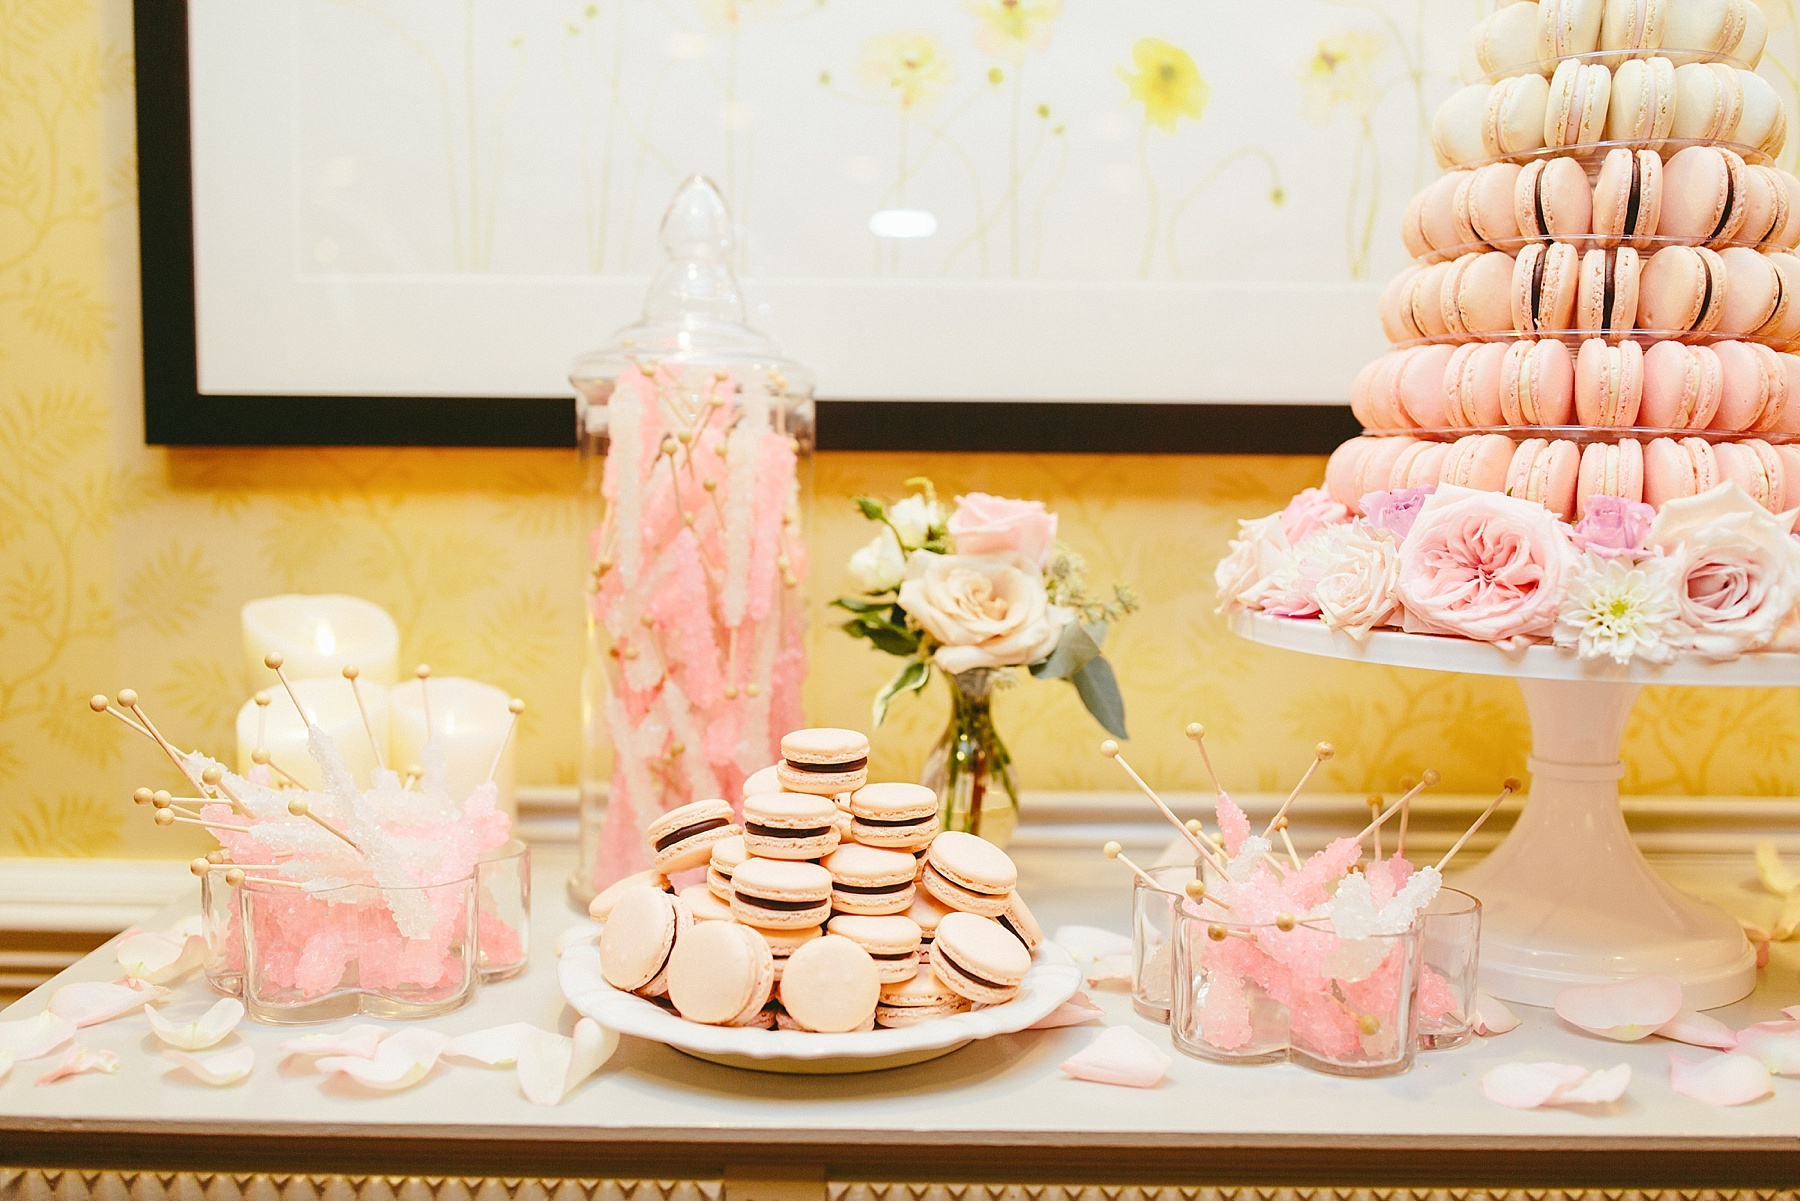 Unique wedding candy table, wedding dessert table, wedding macaroons, unique wedding dessert, macaroon tower, wedding cake alternatives, blush wedding theme, blush wedding colors, blush wedding accents,Brooklyn wedding photography, Brooklyn wedding, Philadelphia wedding photographer, Philadelphia wedding, Brooklyn new york photographer, unique wedding inspiration, fun wedding photos, romantic wedding, destination wedding photographer